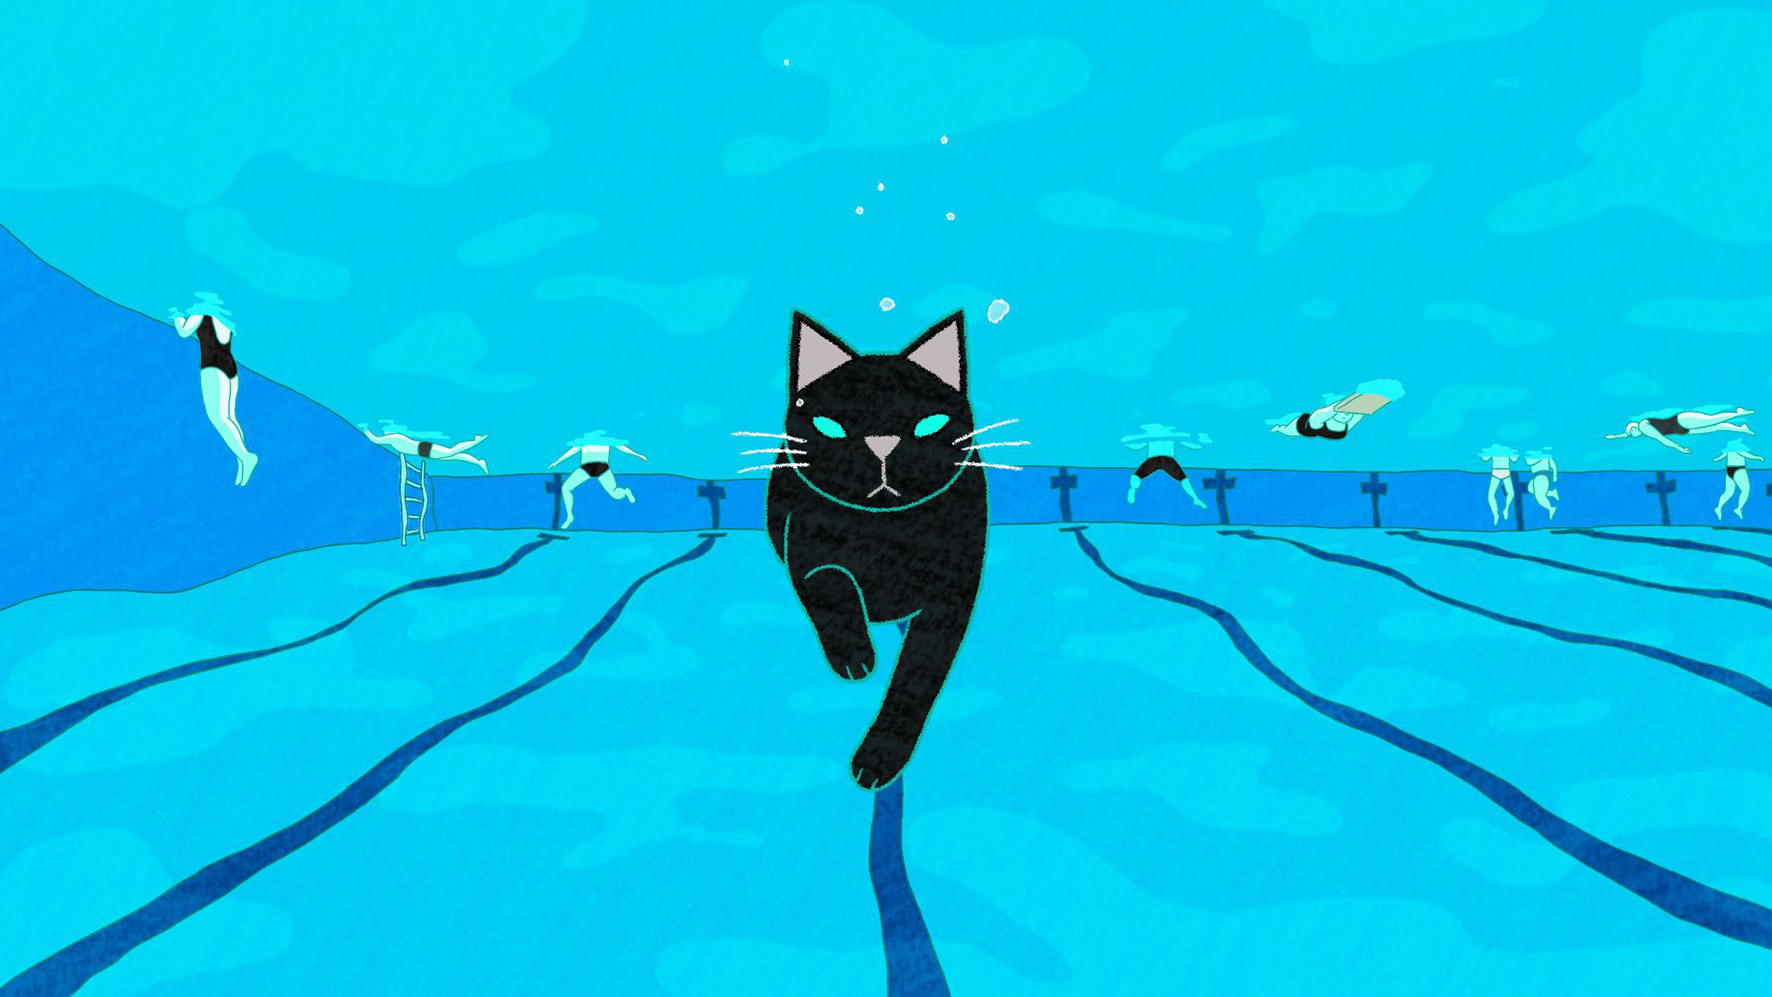 CATS IN THE POOL © AniSEED